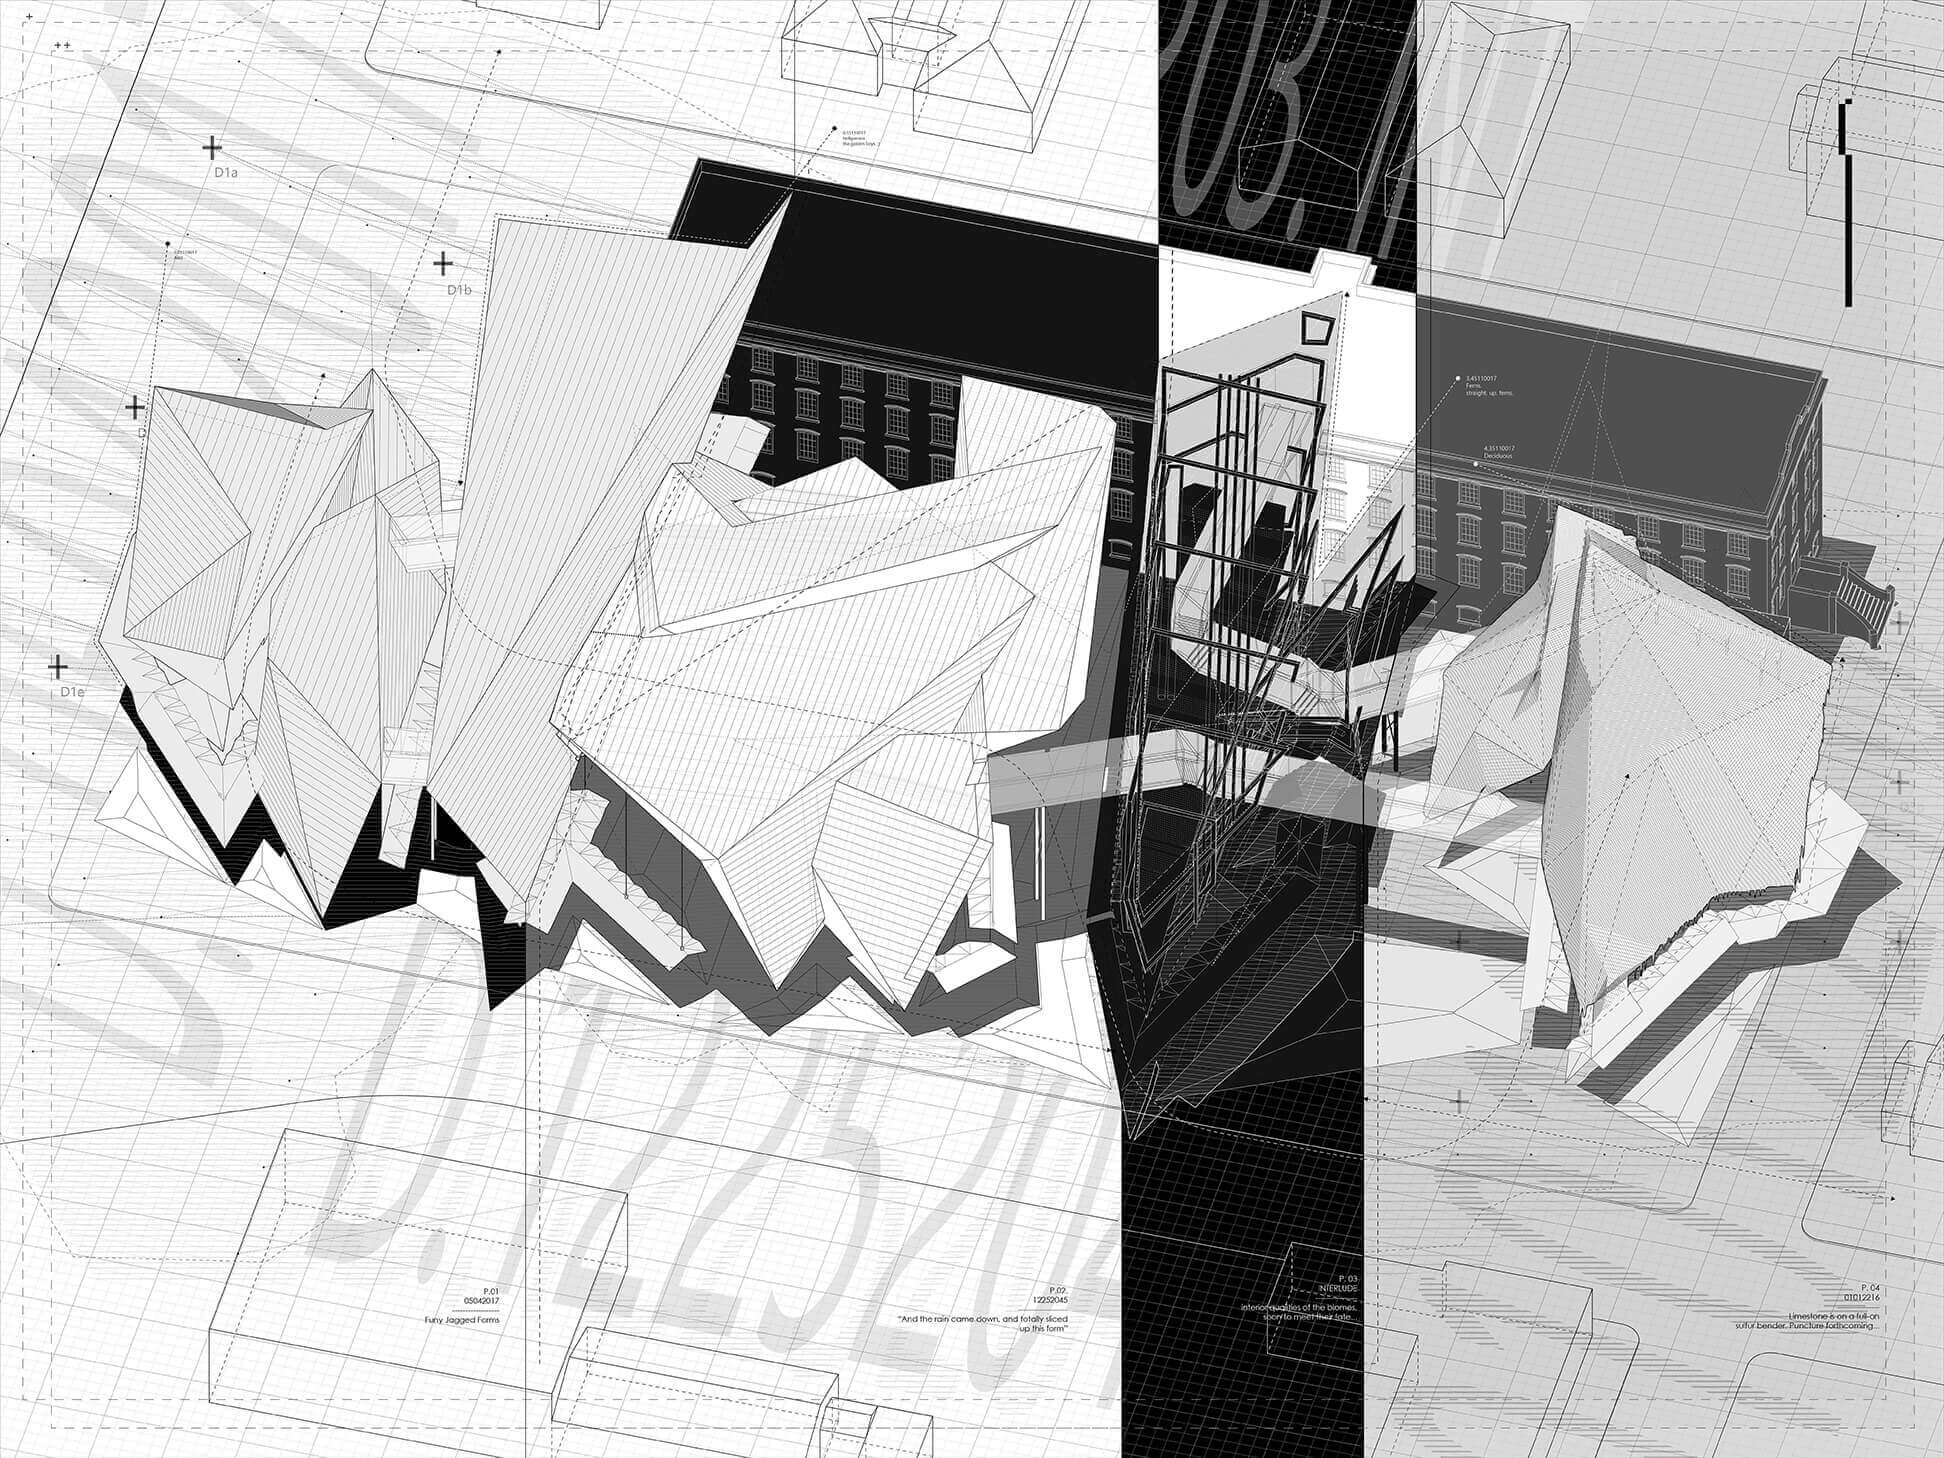 Work by Emily Hertzberg, B.Arch '17 and Andrew Martens, B.Arch '17